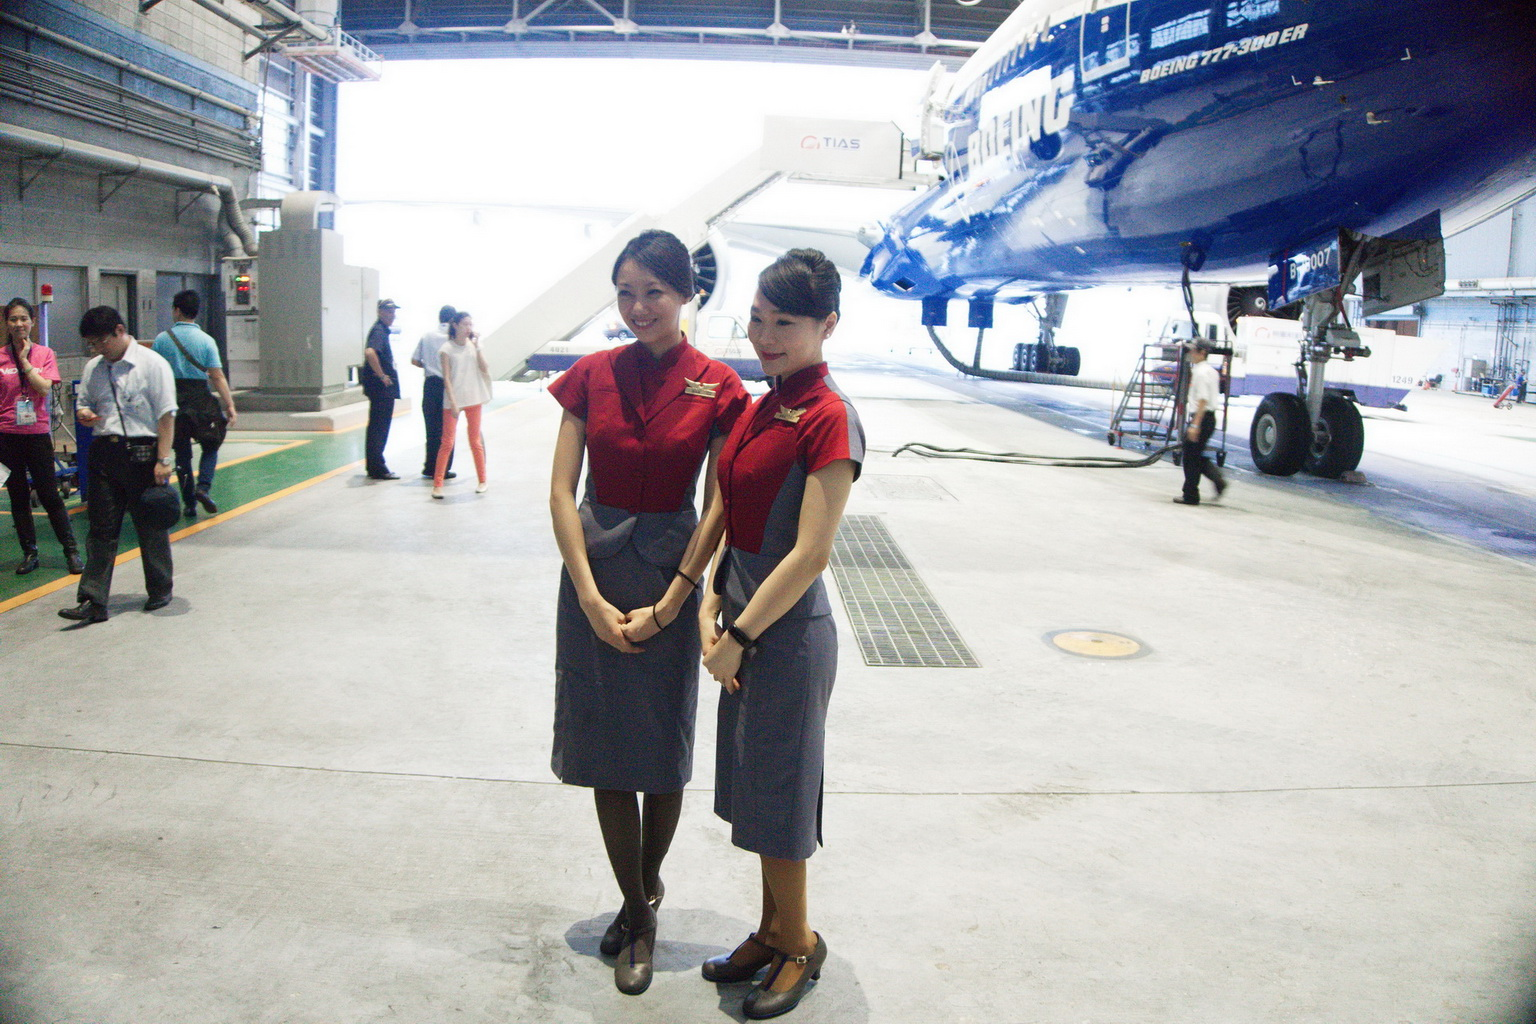 ss_china_airlines_hq (2)